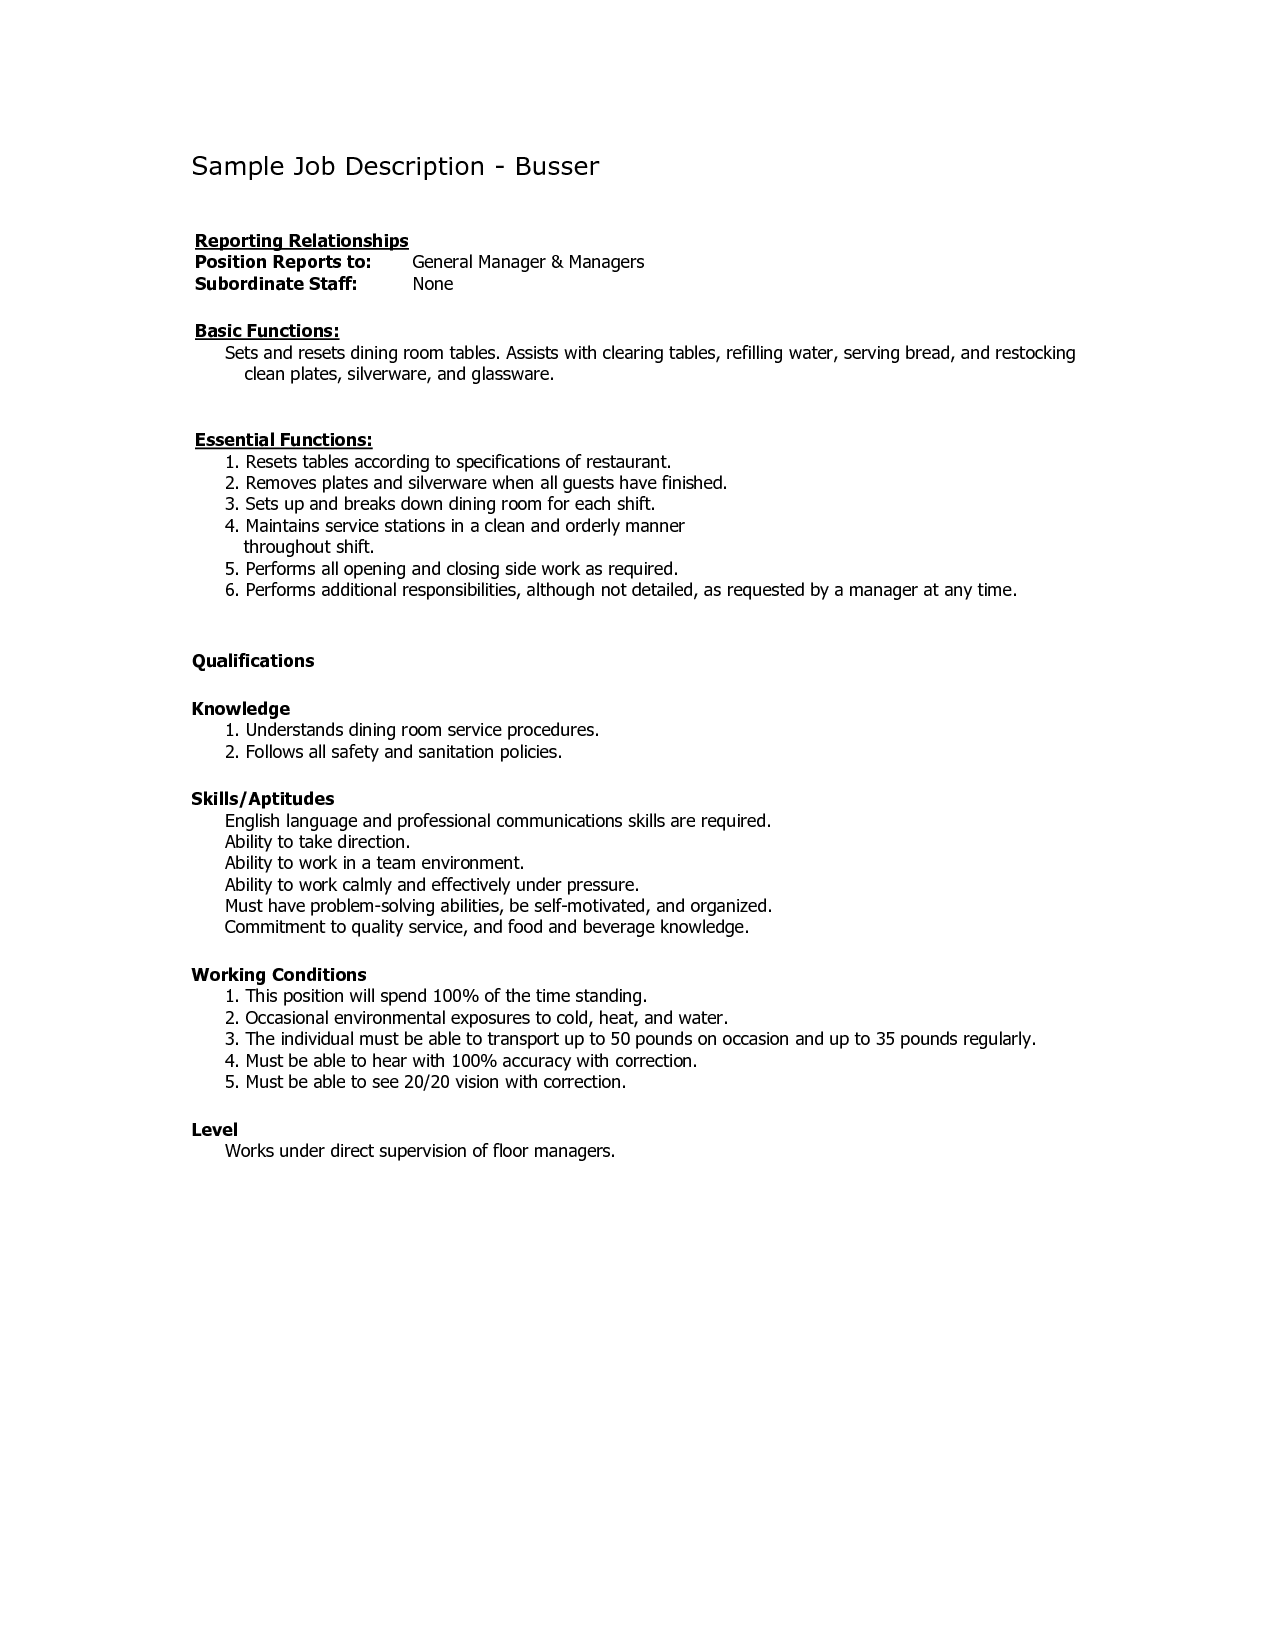 resume job duties waitress resume writing example resume job duties waitress waiter and waitress job description duties and jobs part 1 resume sample